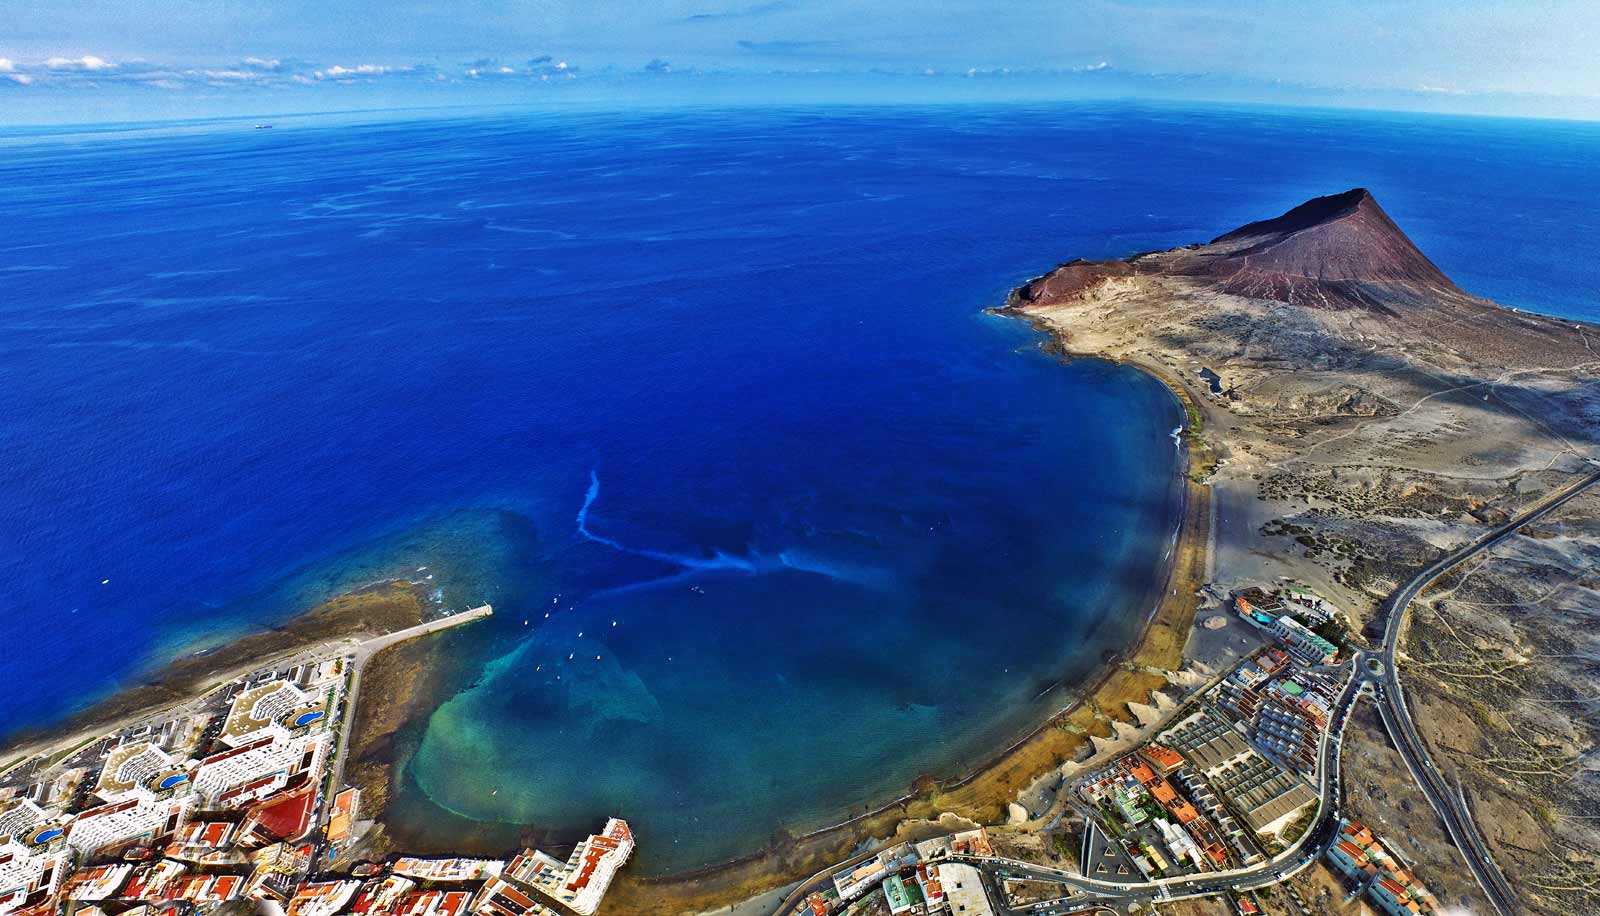 Apartments El Medano  Tenerife  Welcome to windsurf paradise